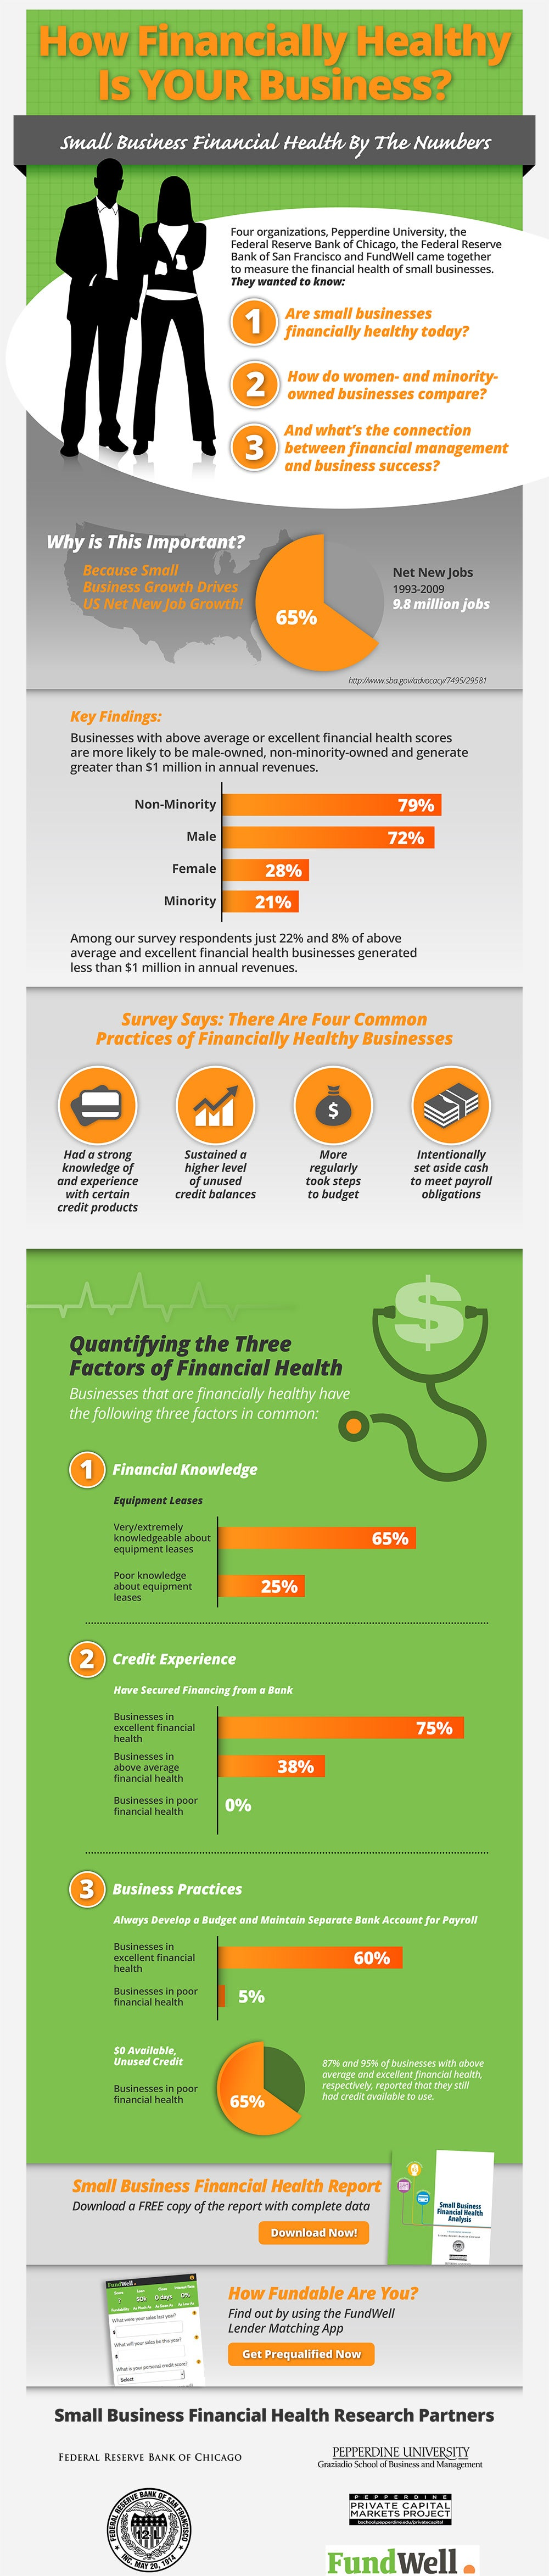 How to Measure Your Company's Overall Financial Health (Infographic)